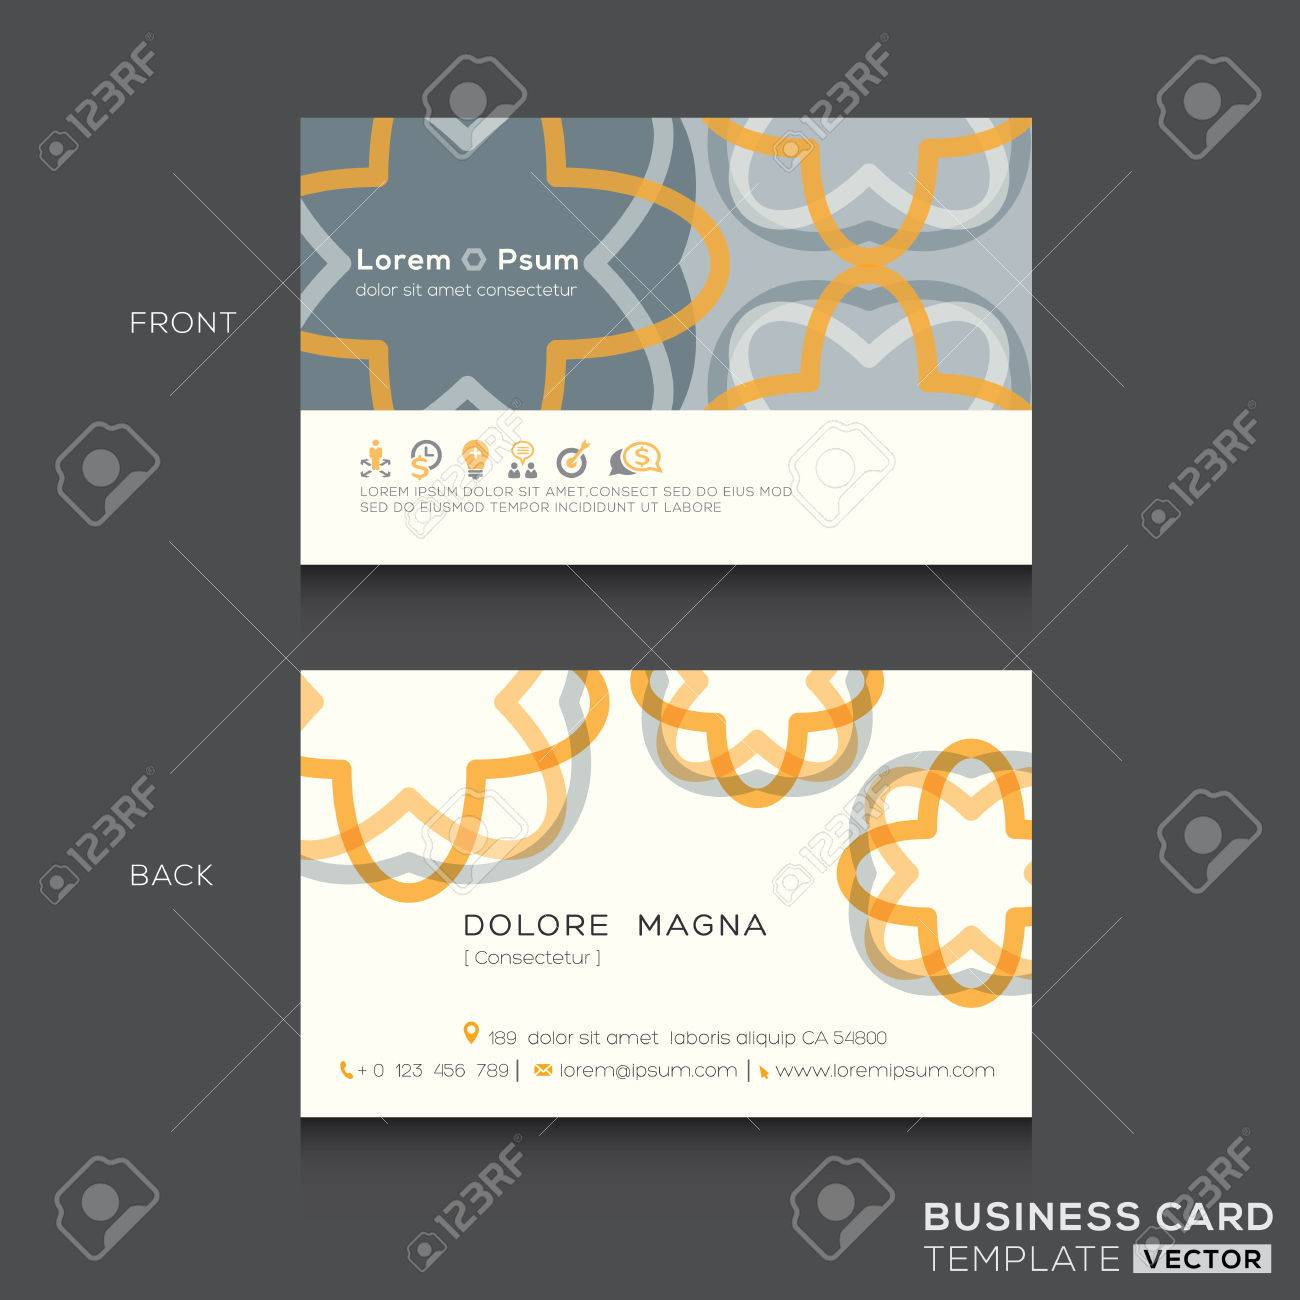 Retro business cards design template royalty free cliparts vectors retro business cards design template stock vector 41024881 accmission Image collections